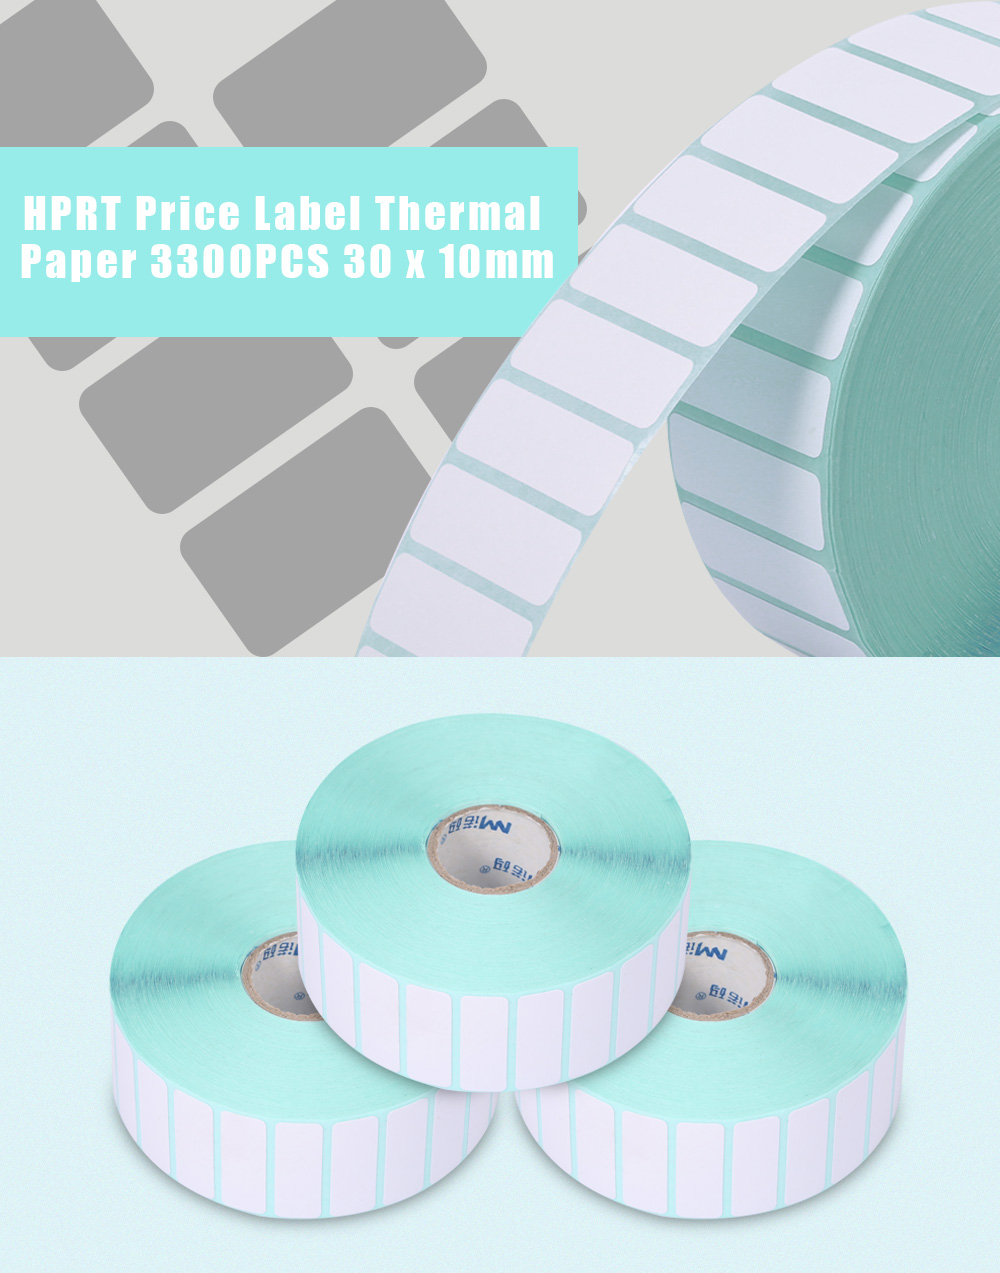 HPRT Thermal Label Paper Sticker Price Roll 3300PCS 30 x 10mm